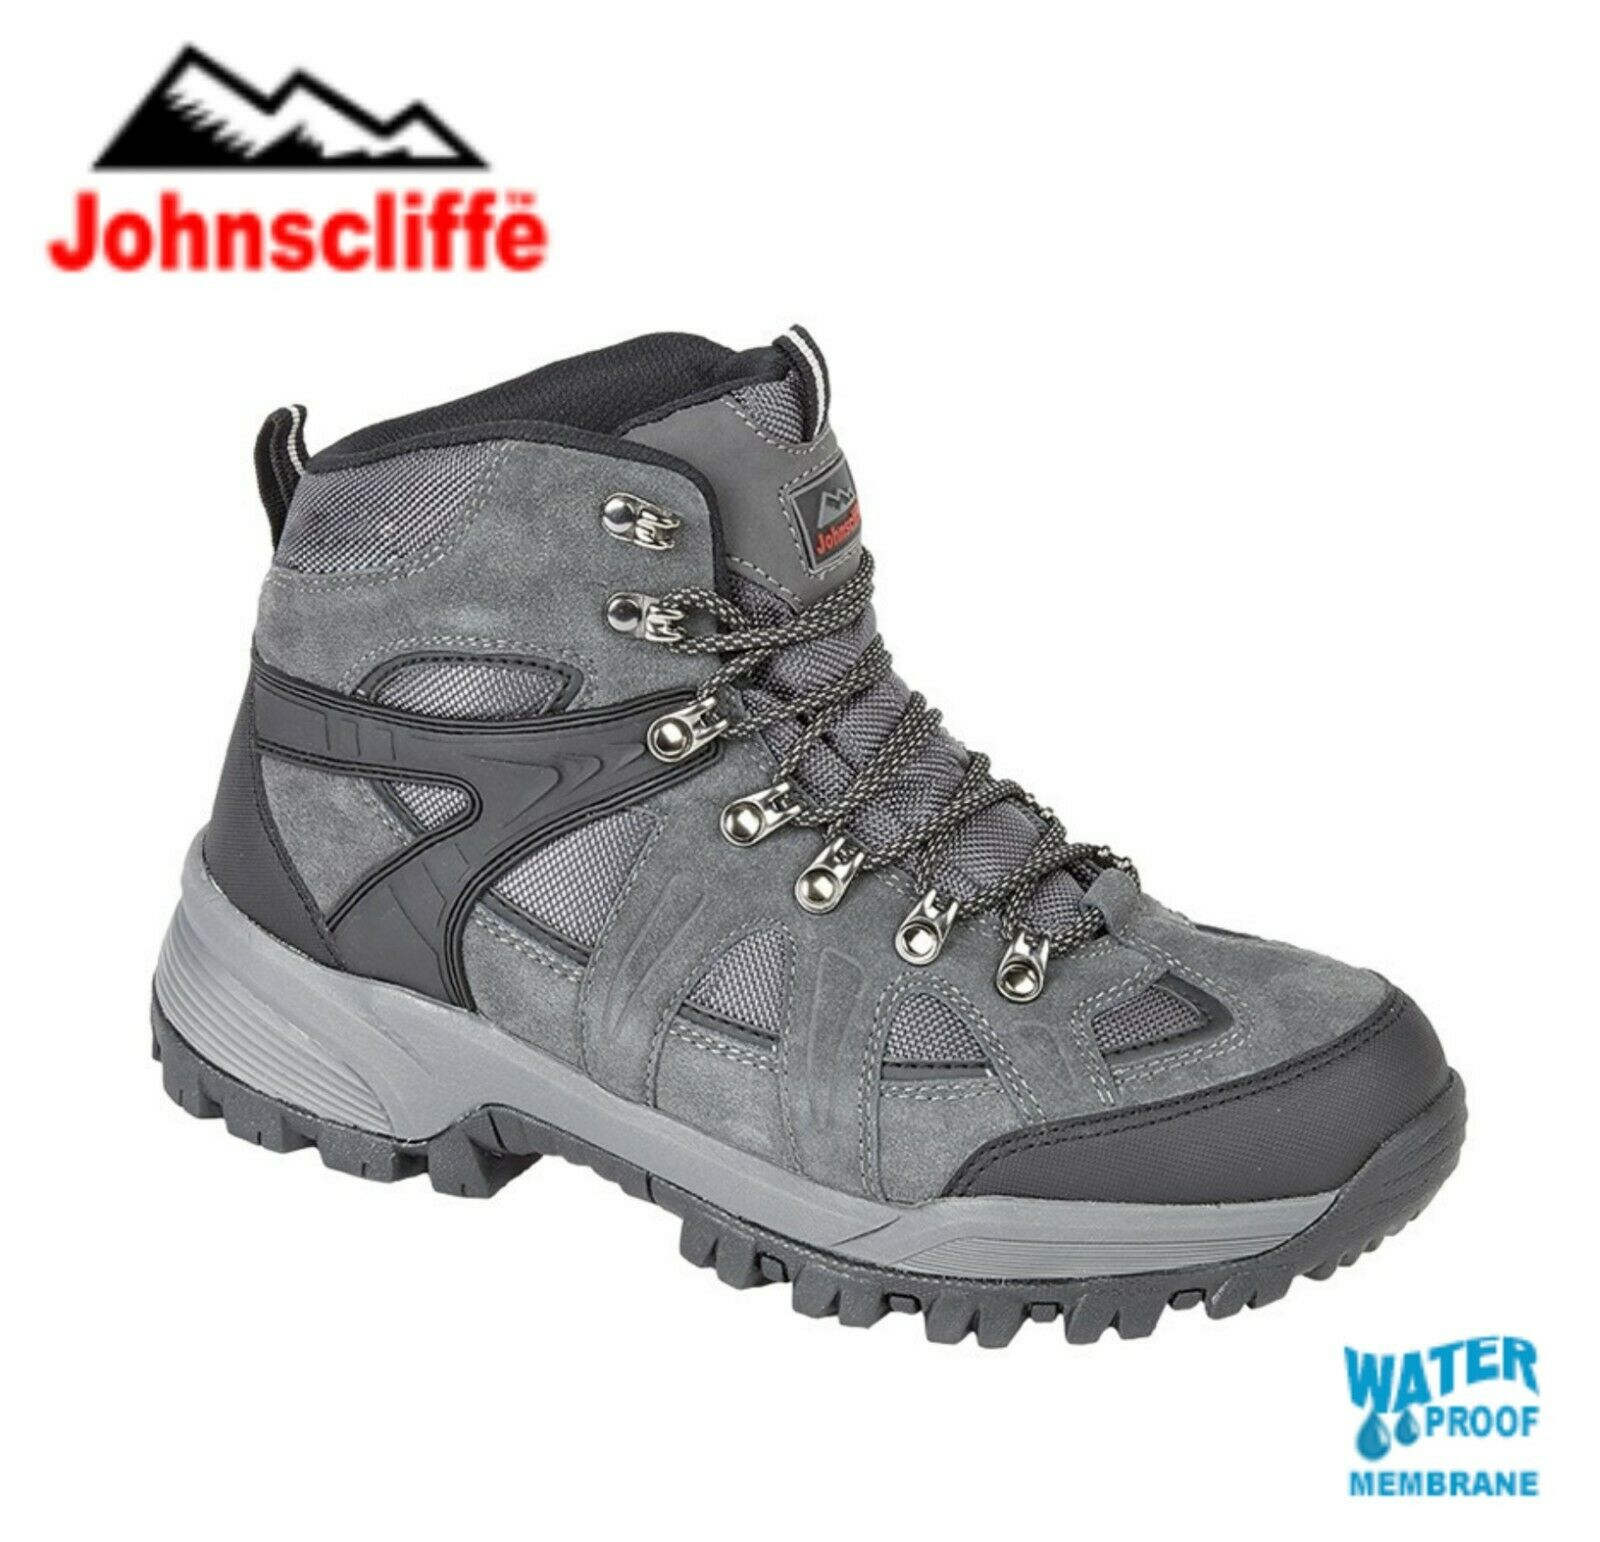 JOHNSCLIFFE - Waterproof Grey Suede Hiking Boots - Sizes 4 5 6 7 8 9 10 11 12 13